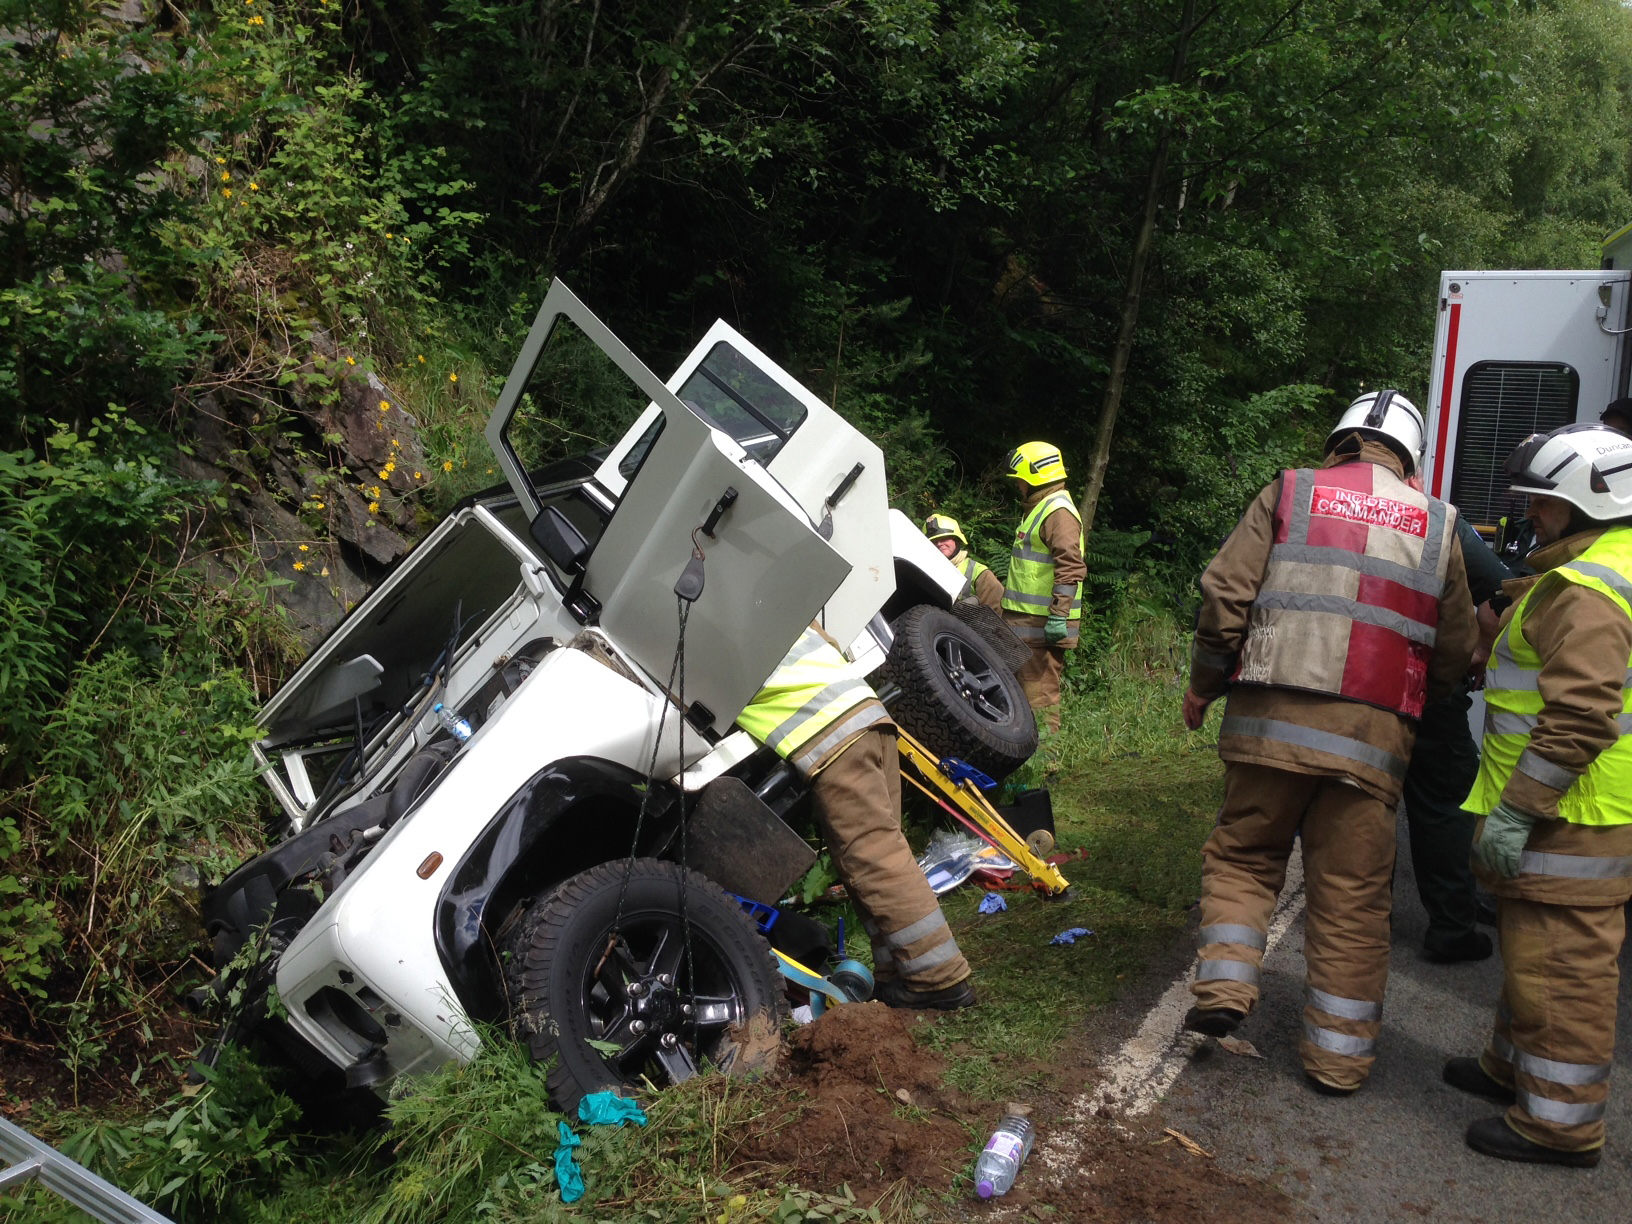 SFRS freed two people from vehicle following A87 crash